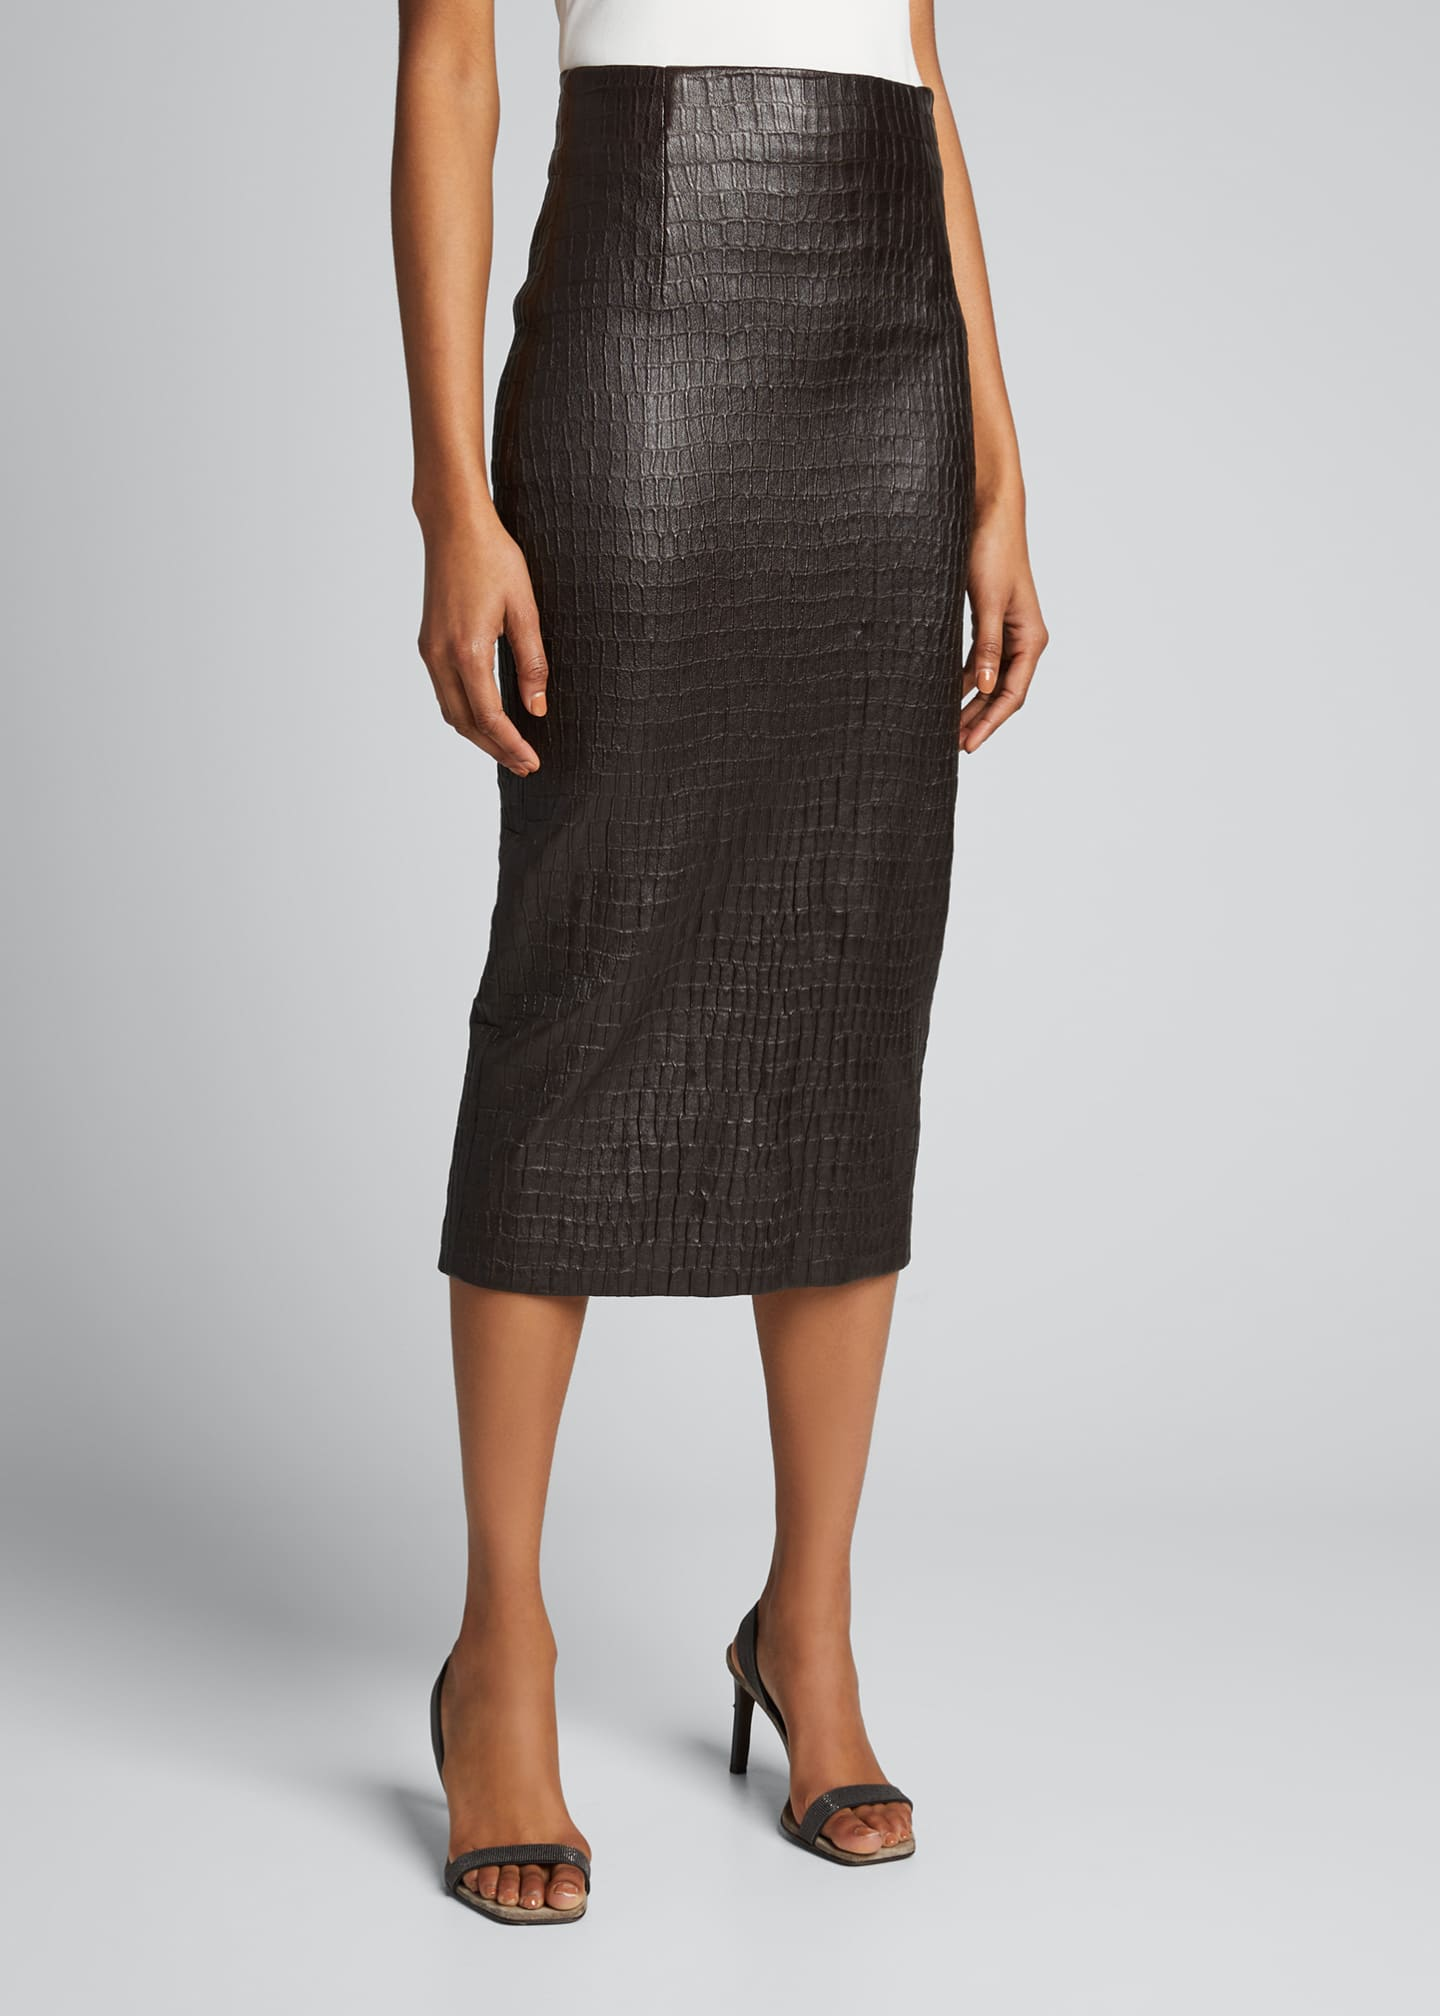 Image 3 of 5: Croc-Embossed Leather Pencil Skirt